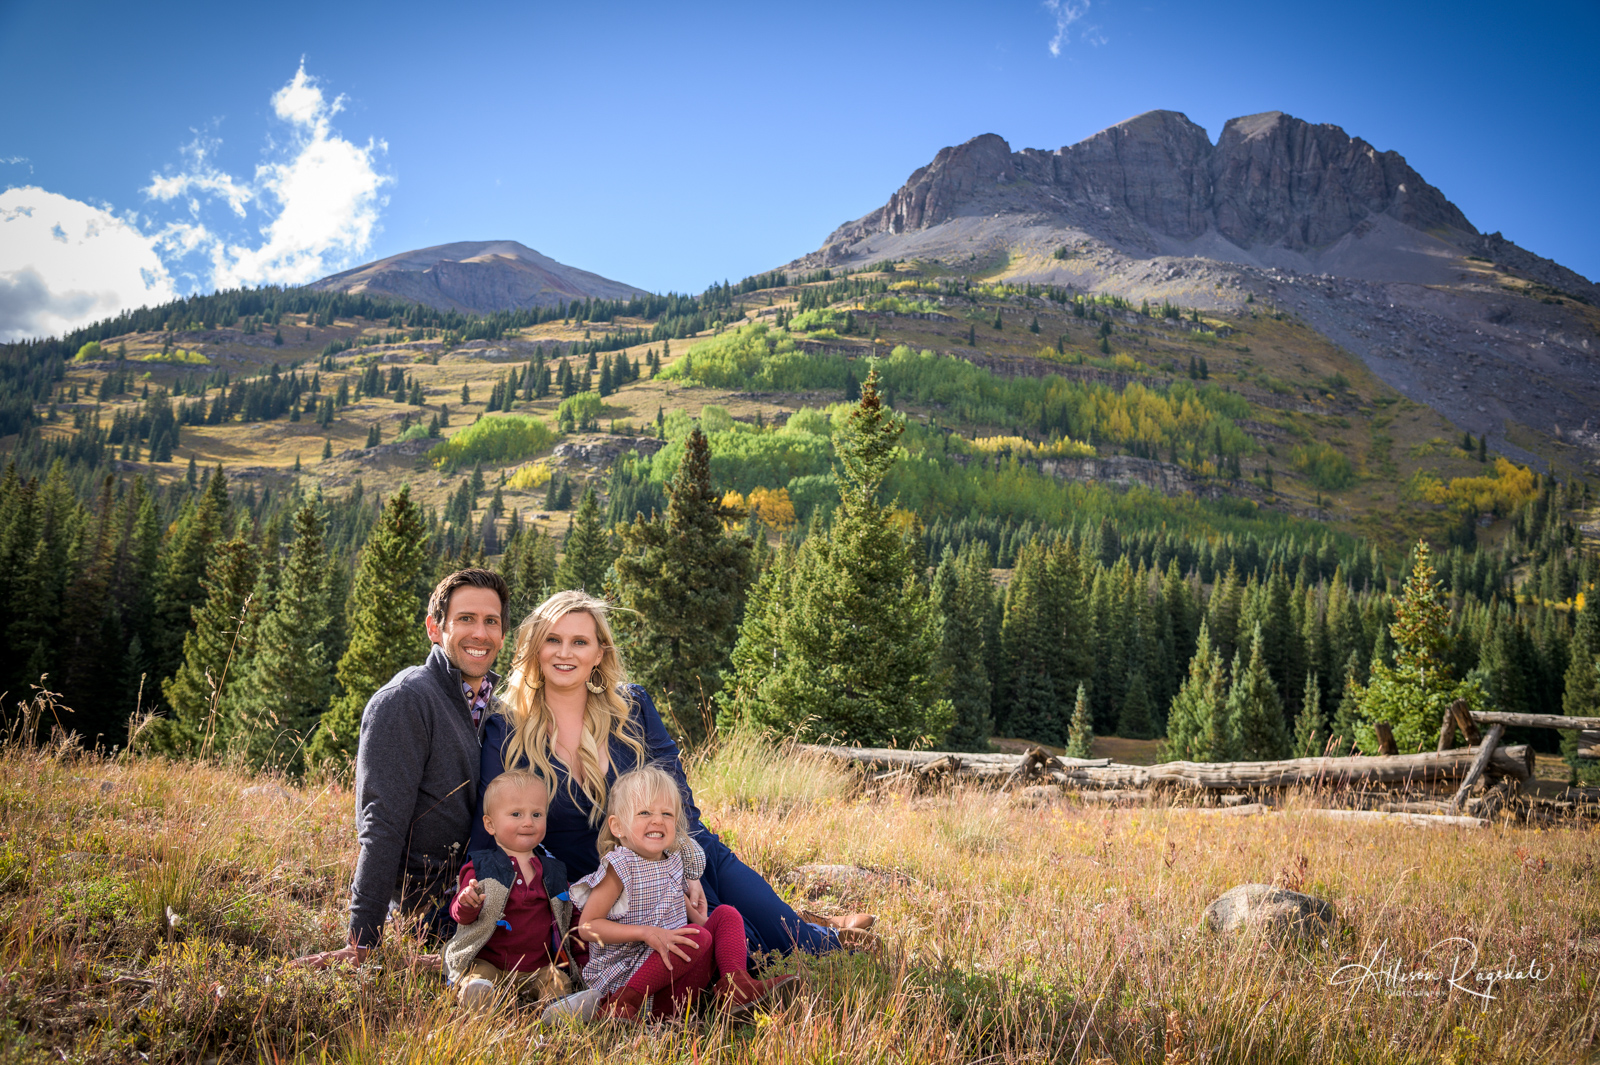 Pretty mountain family pics